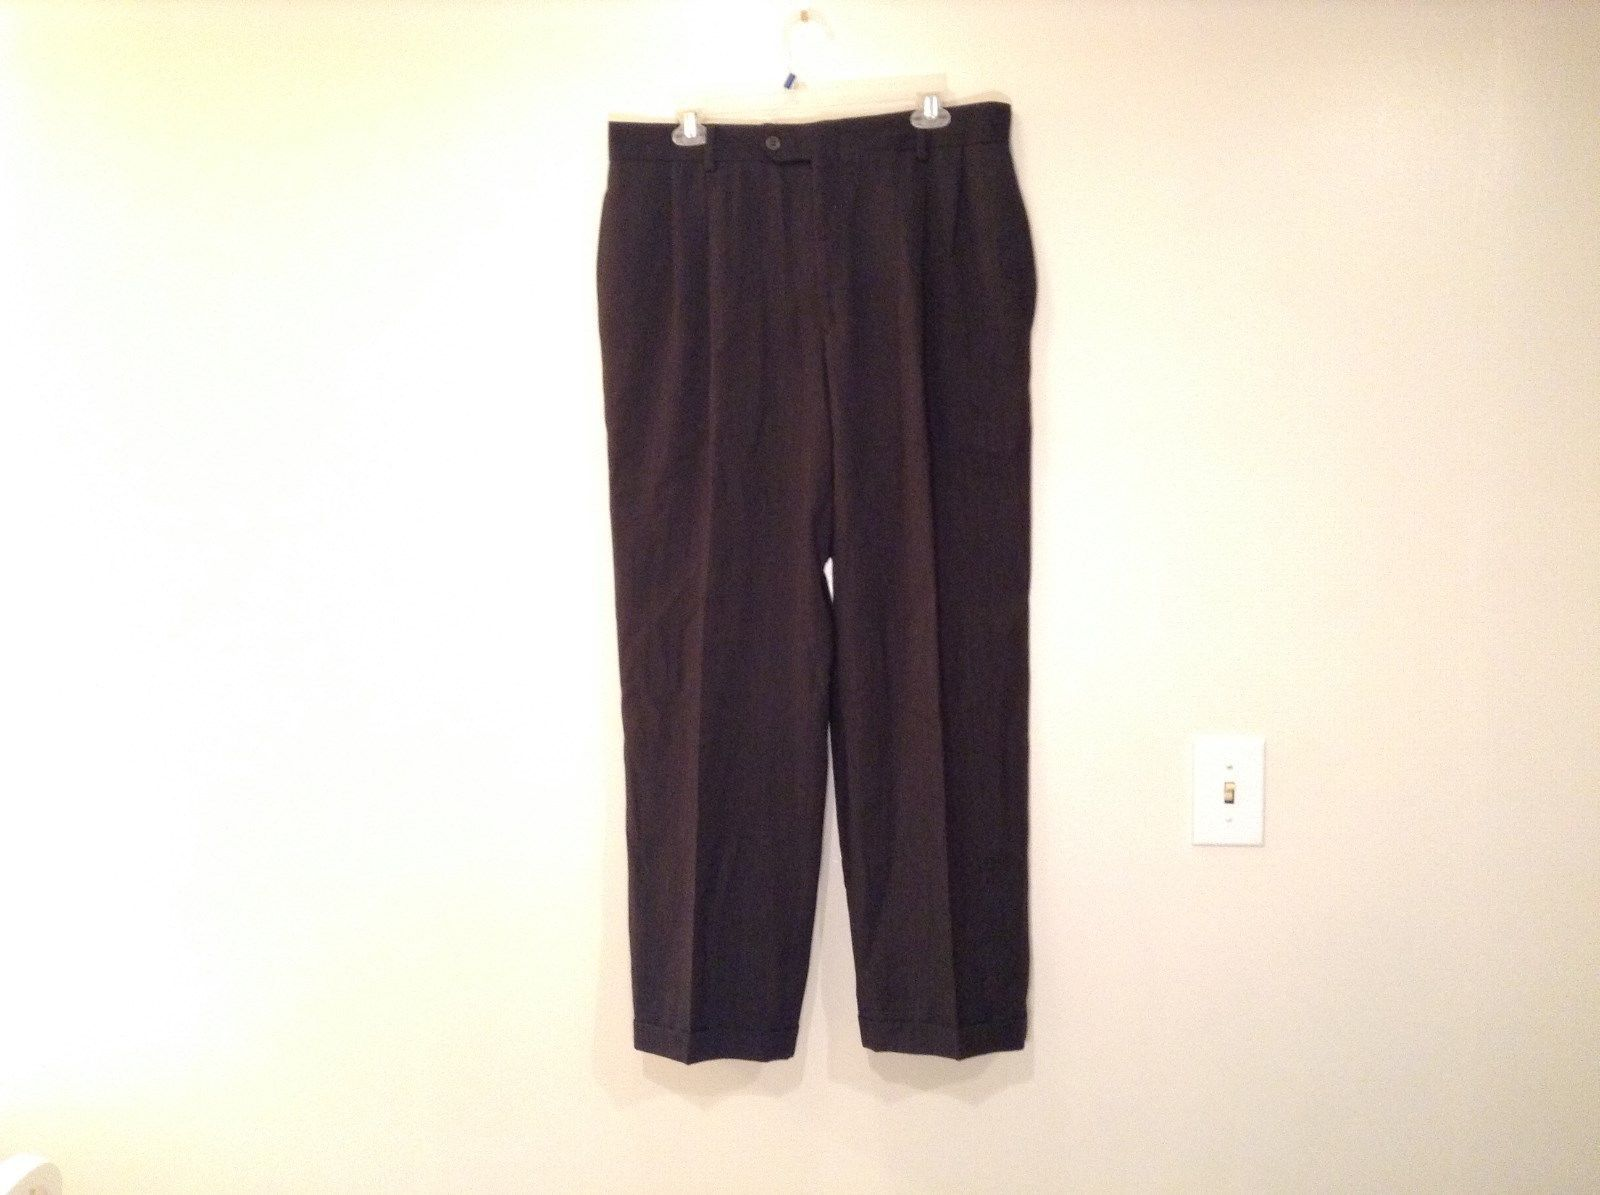 Dark Gray Pleated Front Dress Pants Cuffed Bottoms Measurements Below